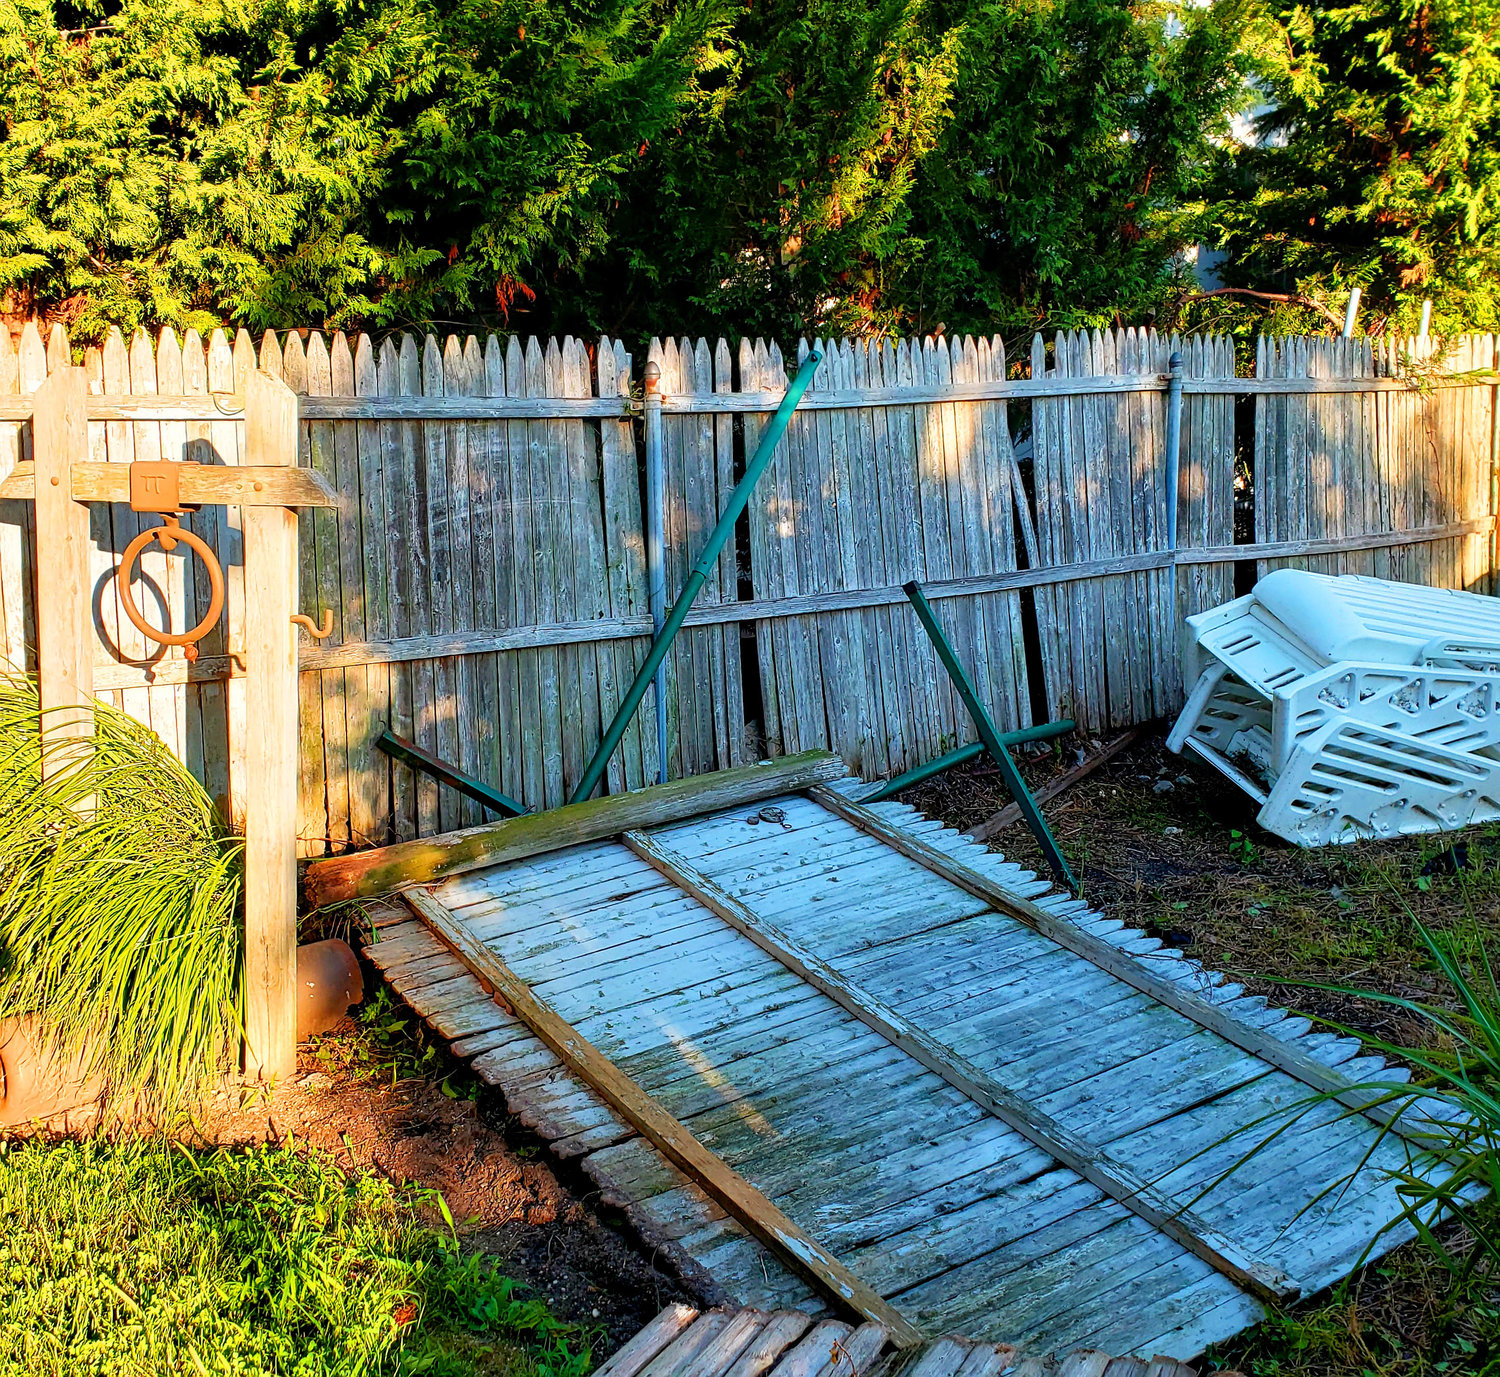 A fence fell from storm damage at Washington Place in Island Park.